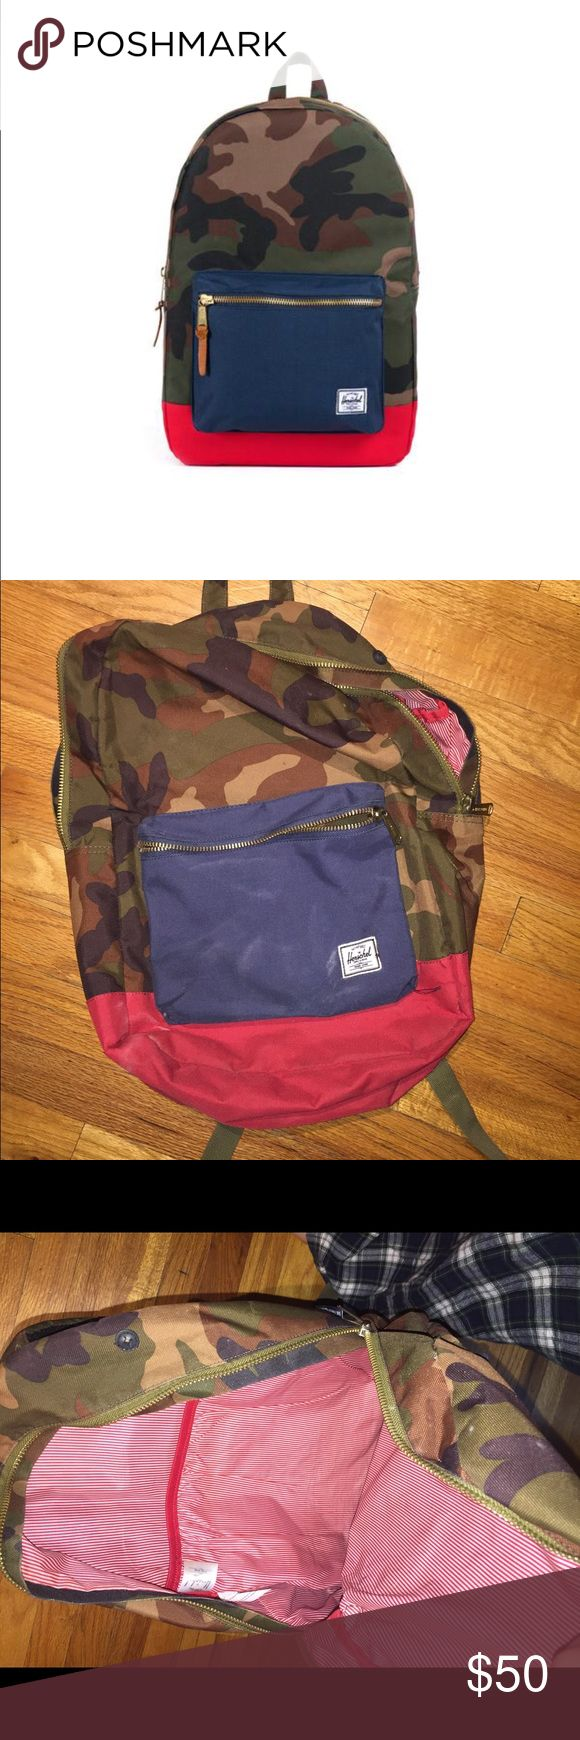 Herschel Camo Backpack Lightly used and in great condition! Just not in need of another backpack. Let me know if you have questions! This fit my 13 inch lap top. Herschel Supply Company Bags Backpacks